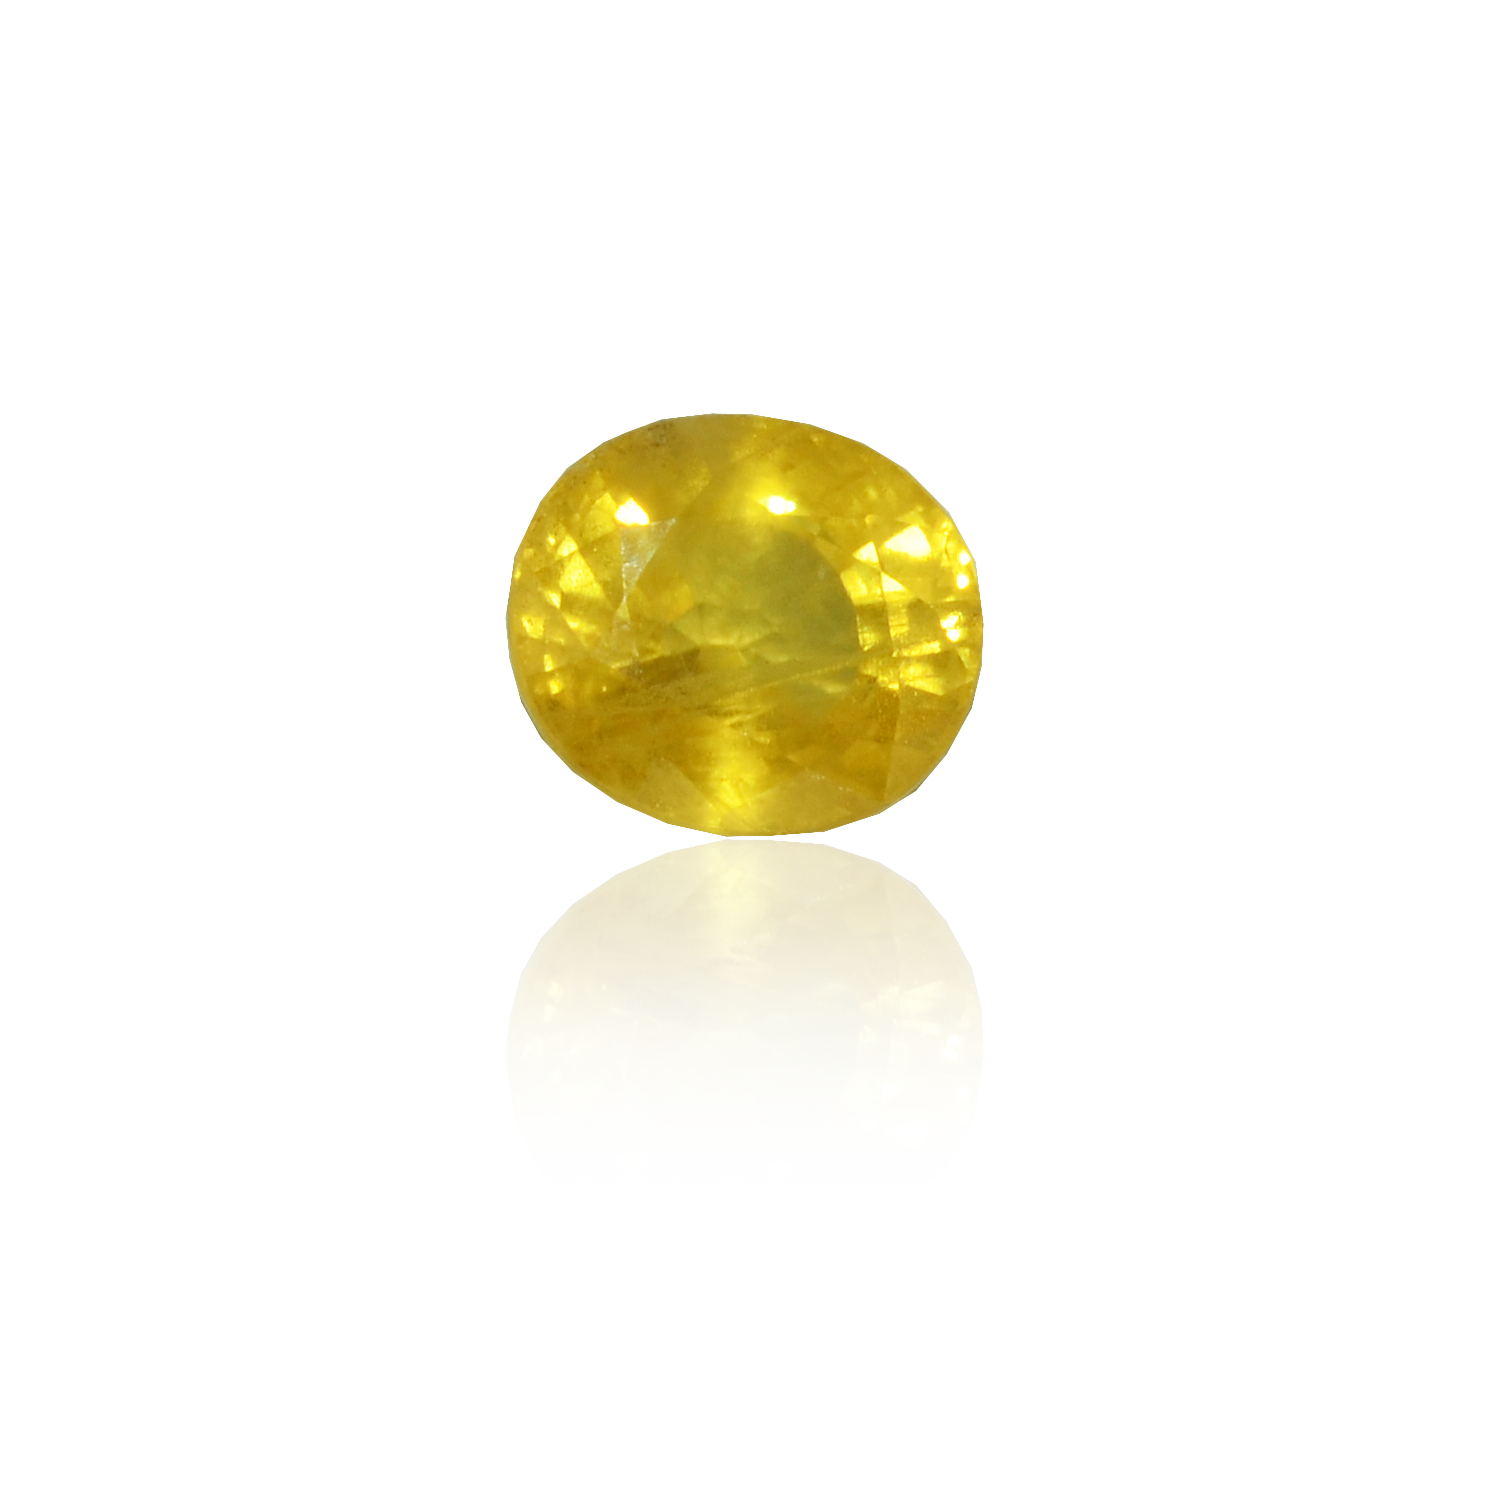 6.12 CARAT, OVAL MIXED CUT NATURAL YELLOW SAPPHIRE